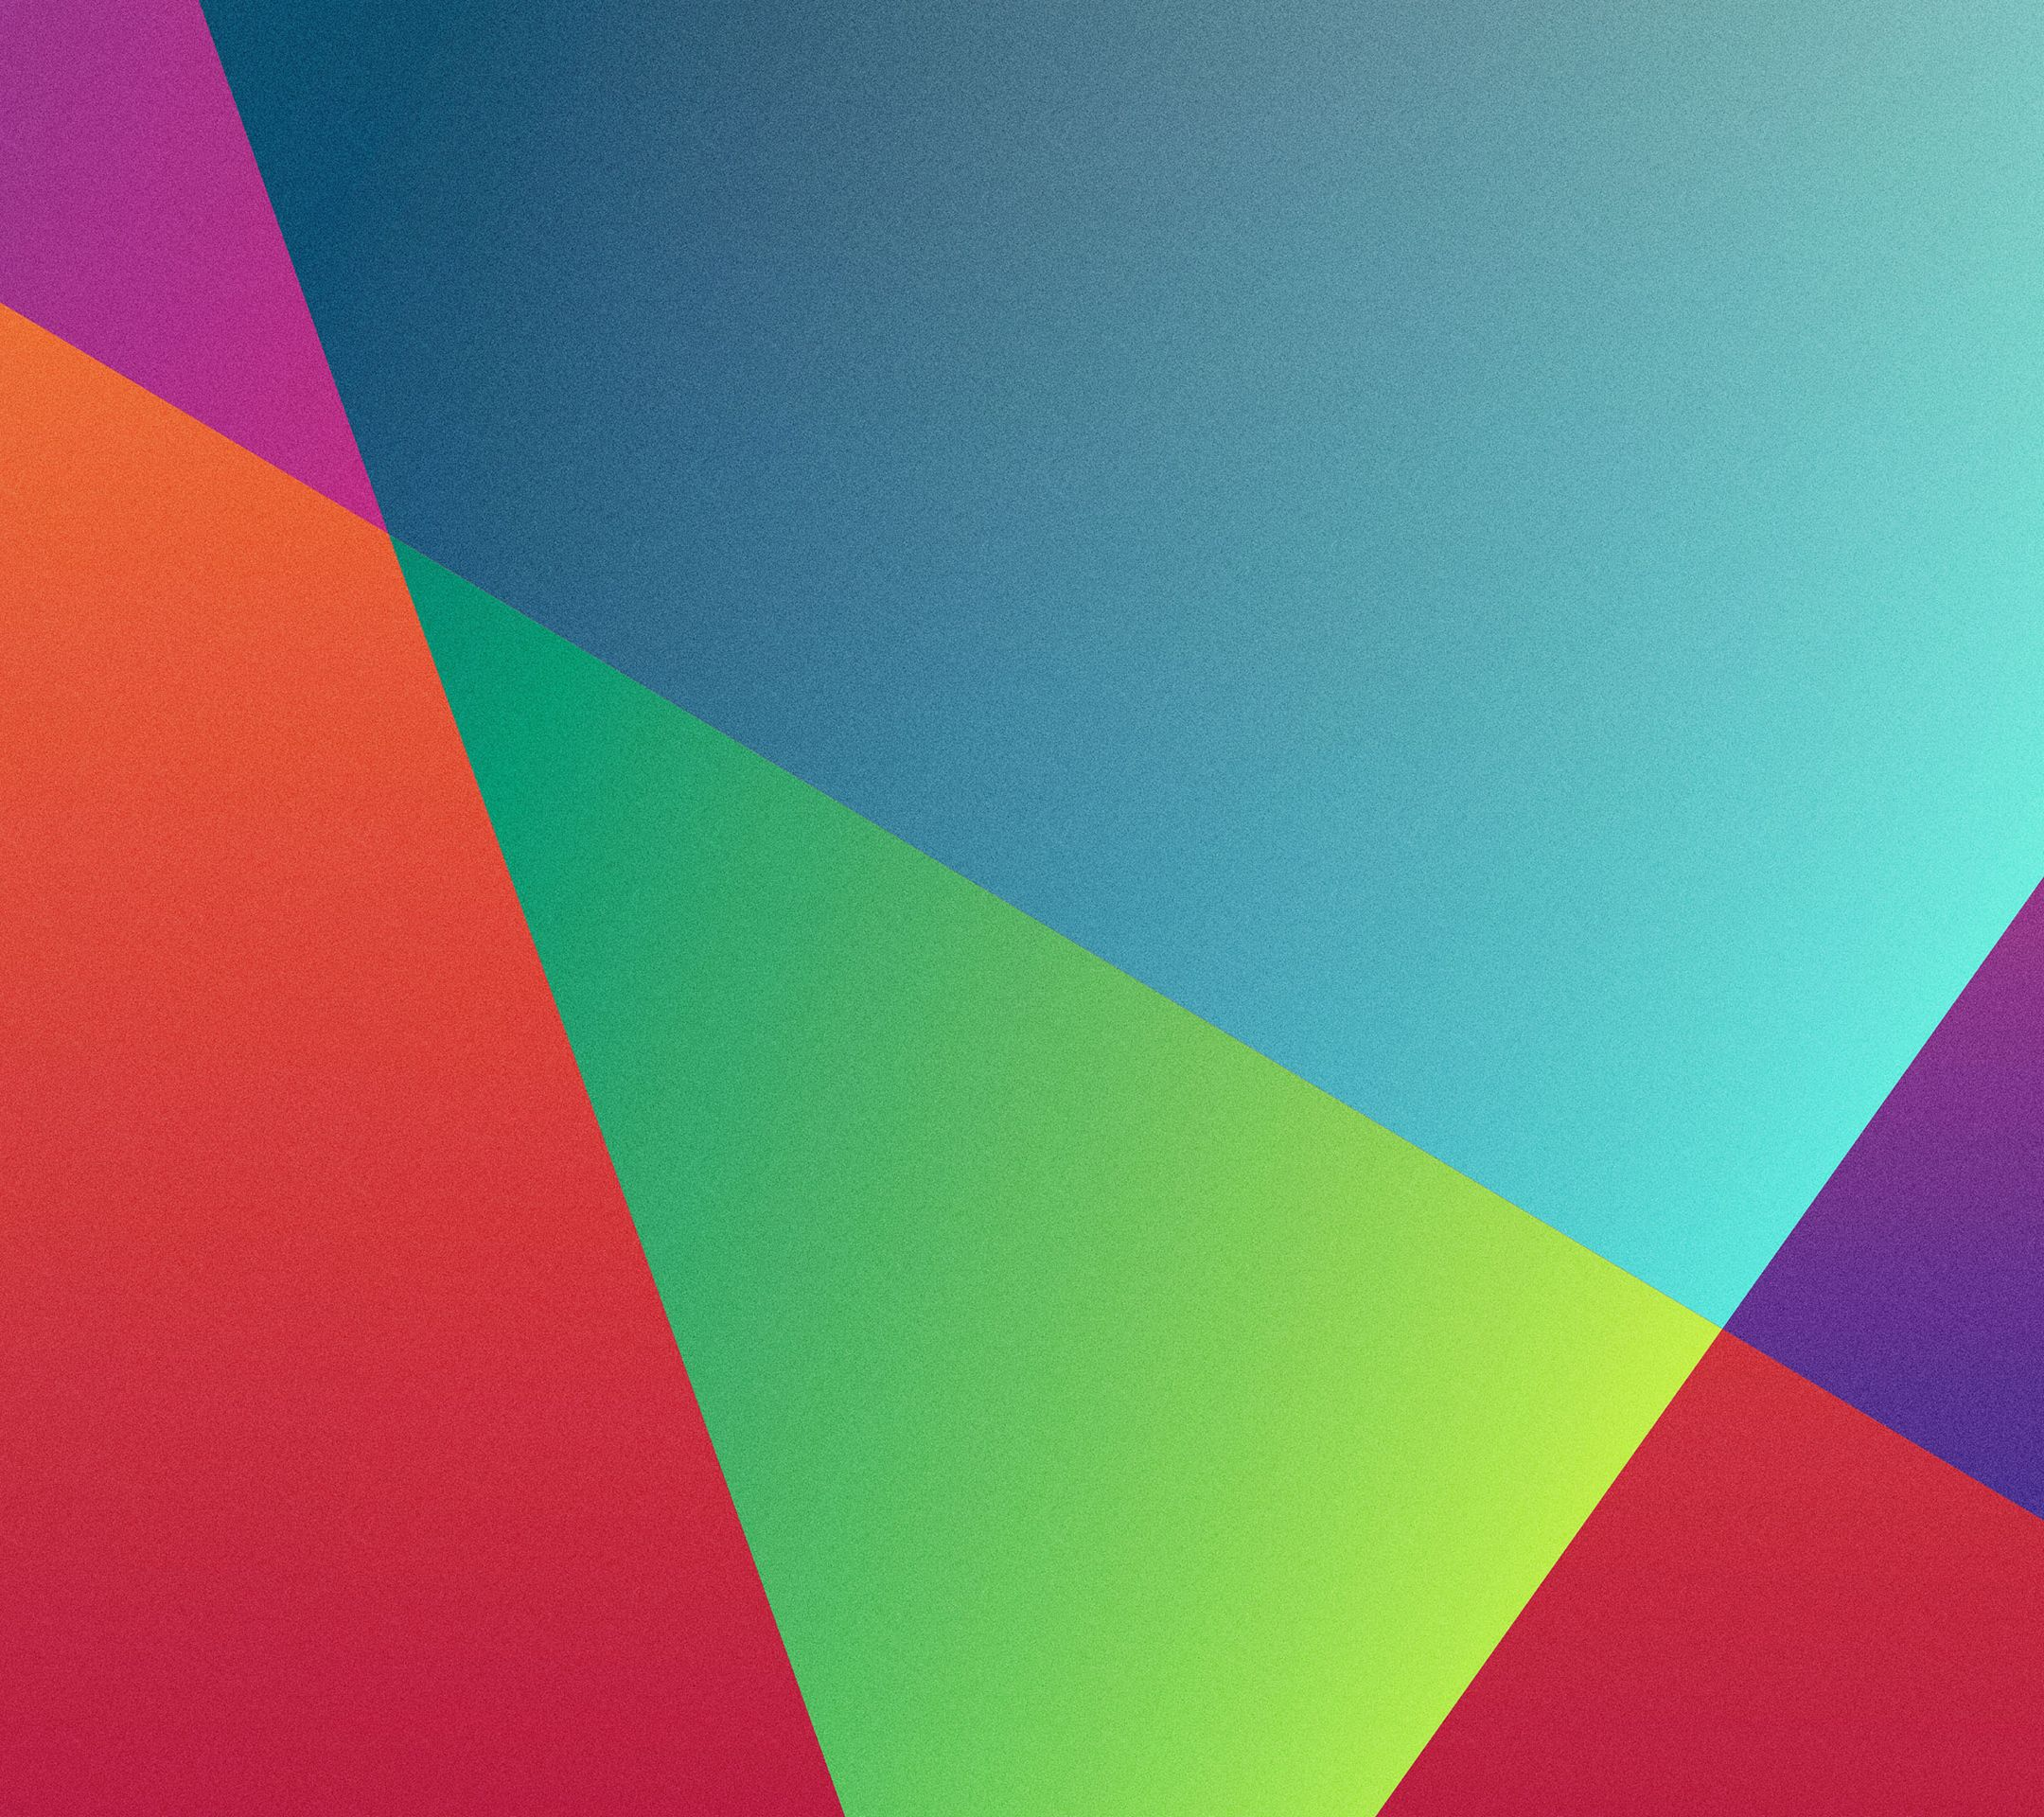 the 1 galaxys5 color wallpaper i just shared http